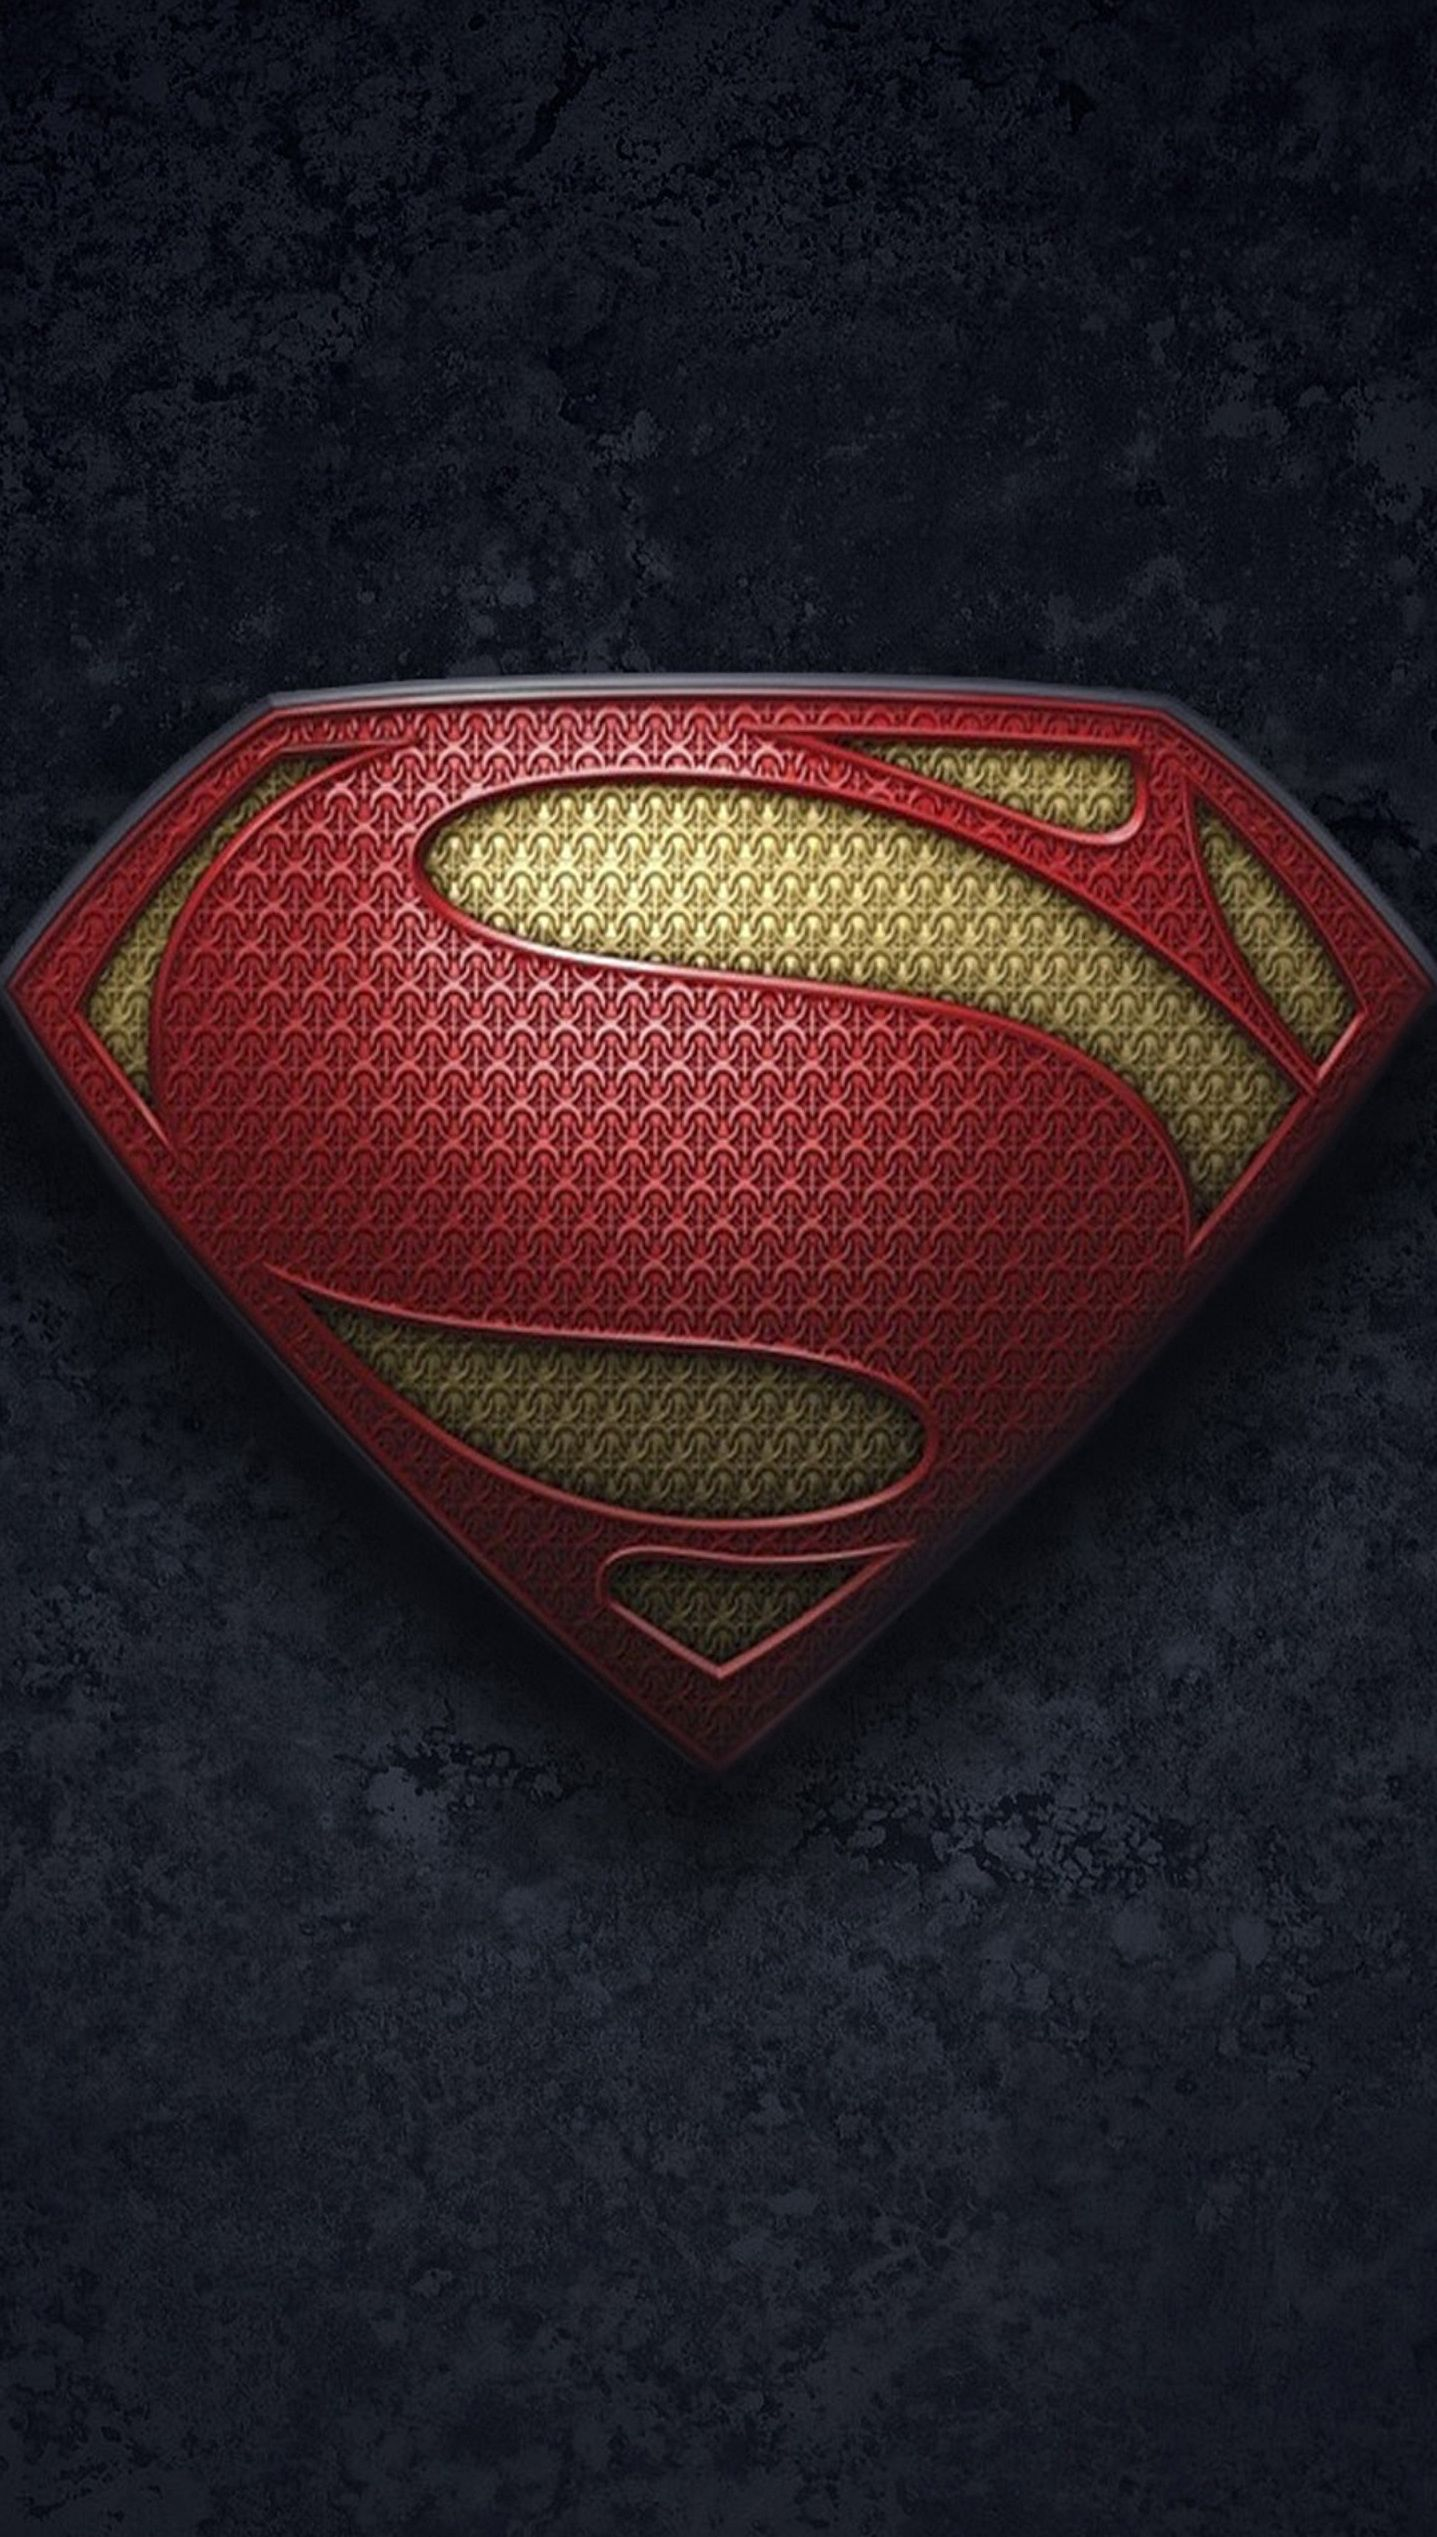 Beautiful Wallpaper Home Screen Superhero - 9fdd0720e5d82c869e4214159e806b8c  Perfect Image Reference_28659.jpg